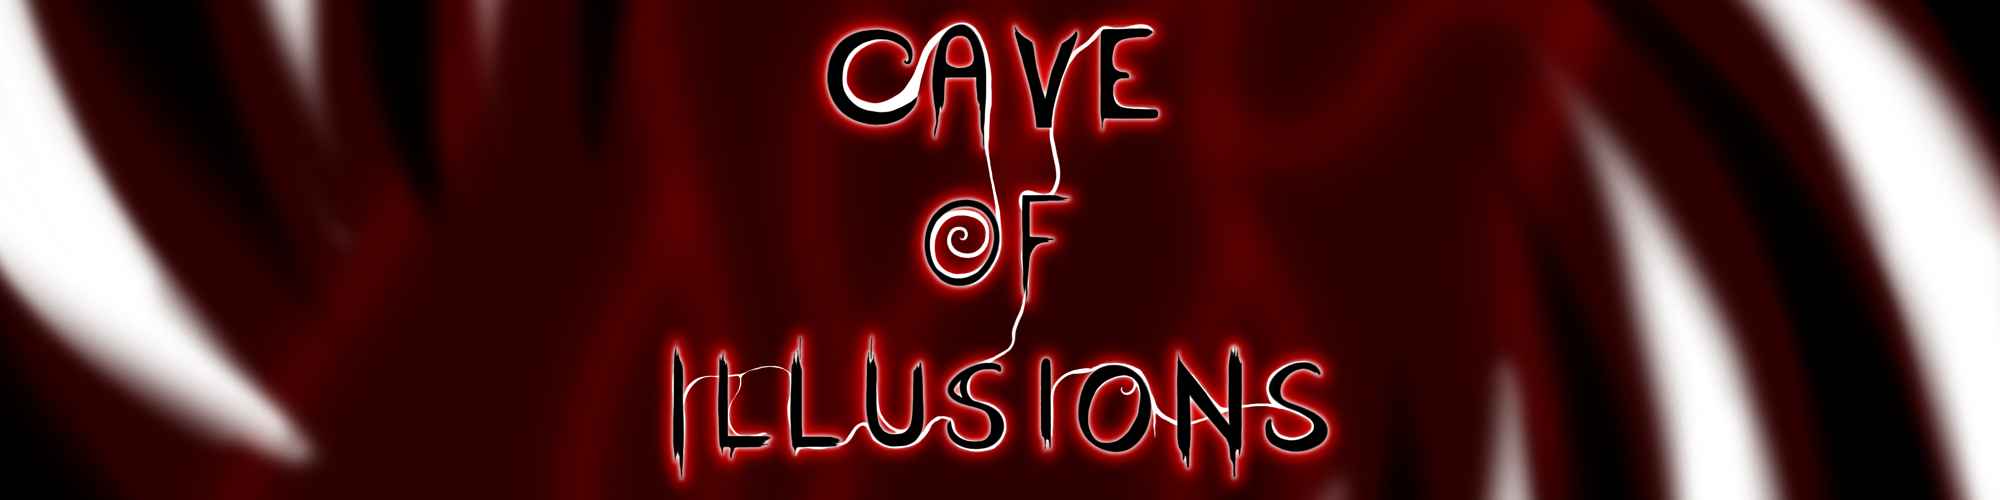 Cave of Illusions